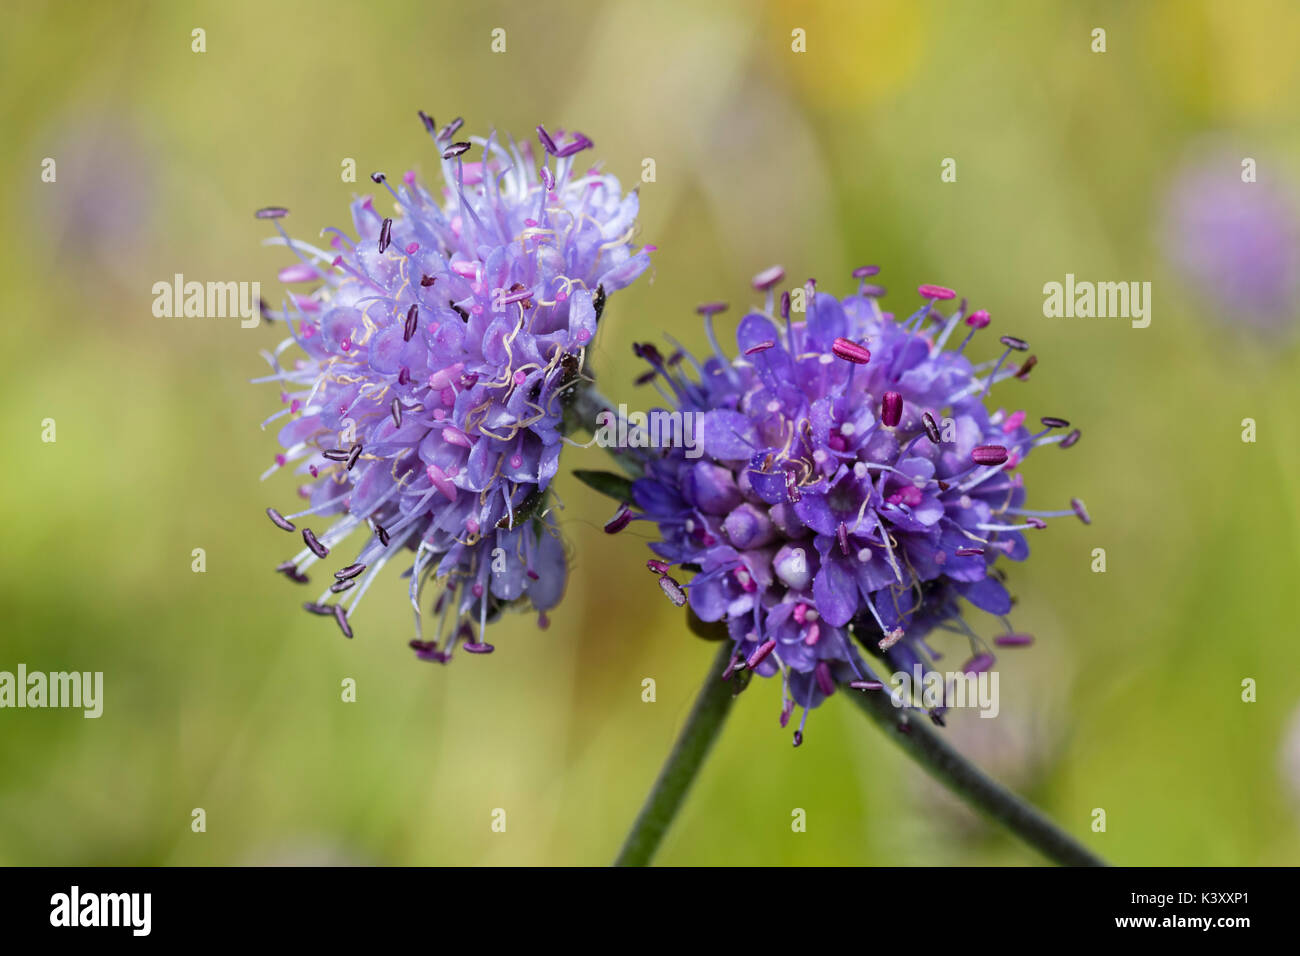 Pincushion blue flower heads of the UK wildflower Devil's bit scabious, Succisa pratensis - Stock Image